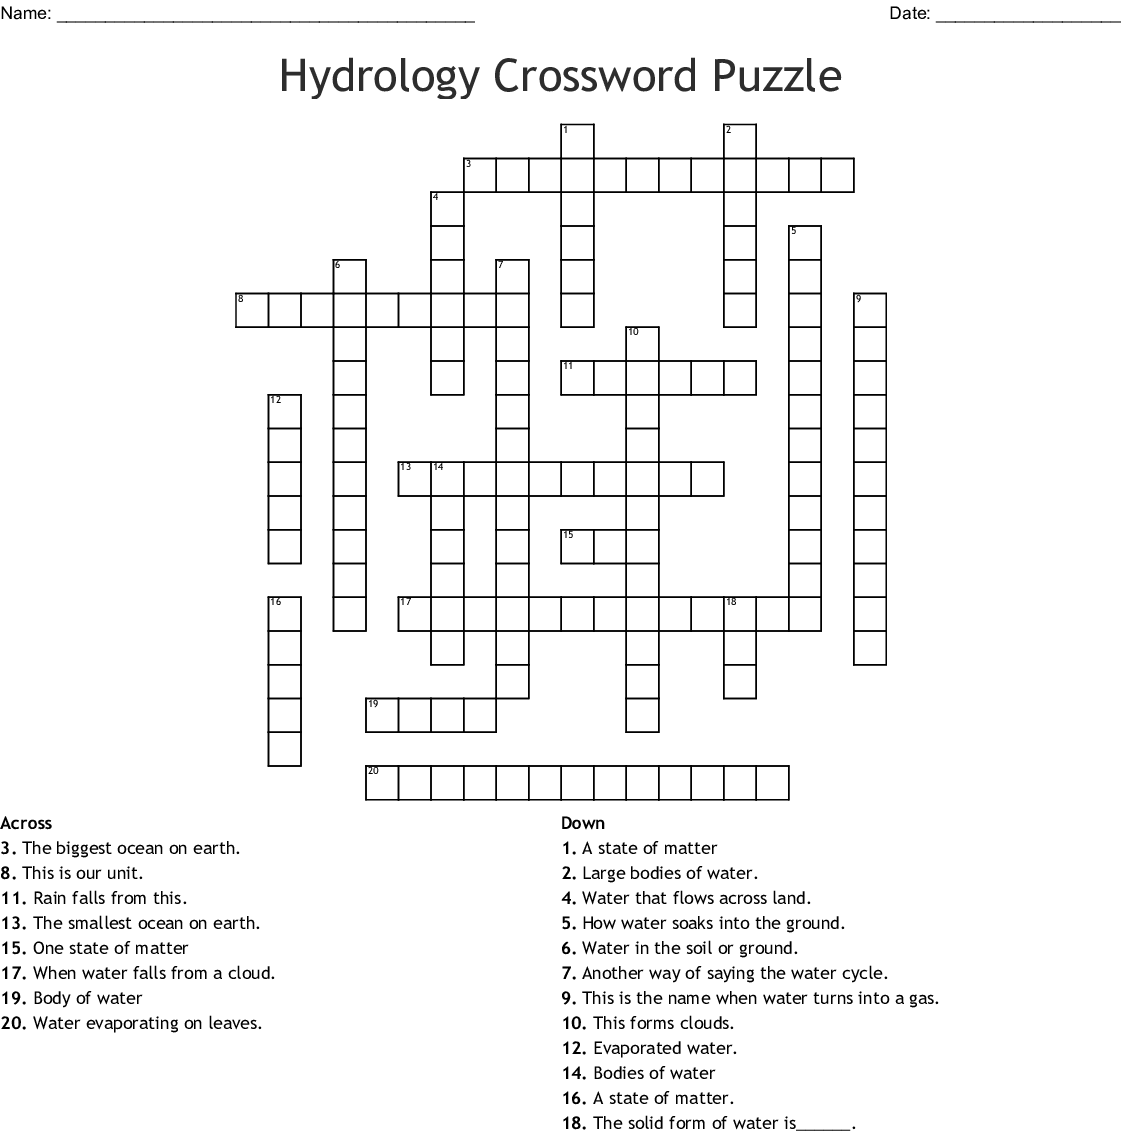 Hydrology Crossword Puzzle